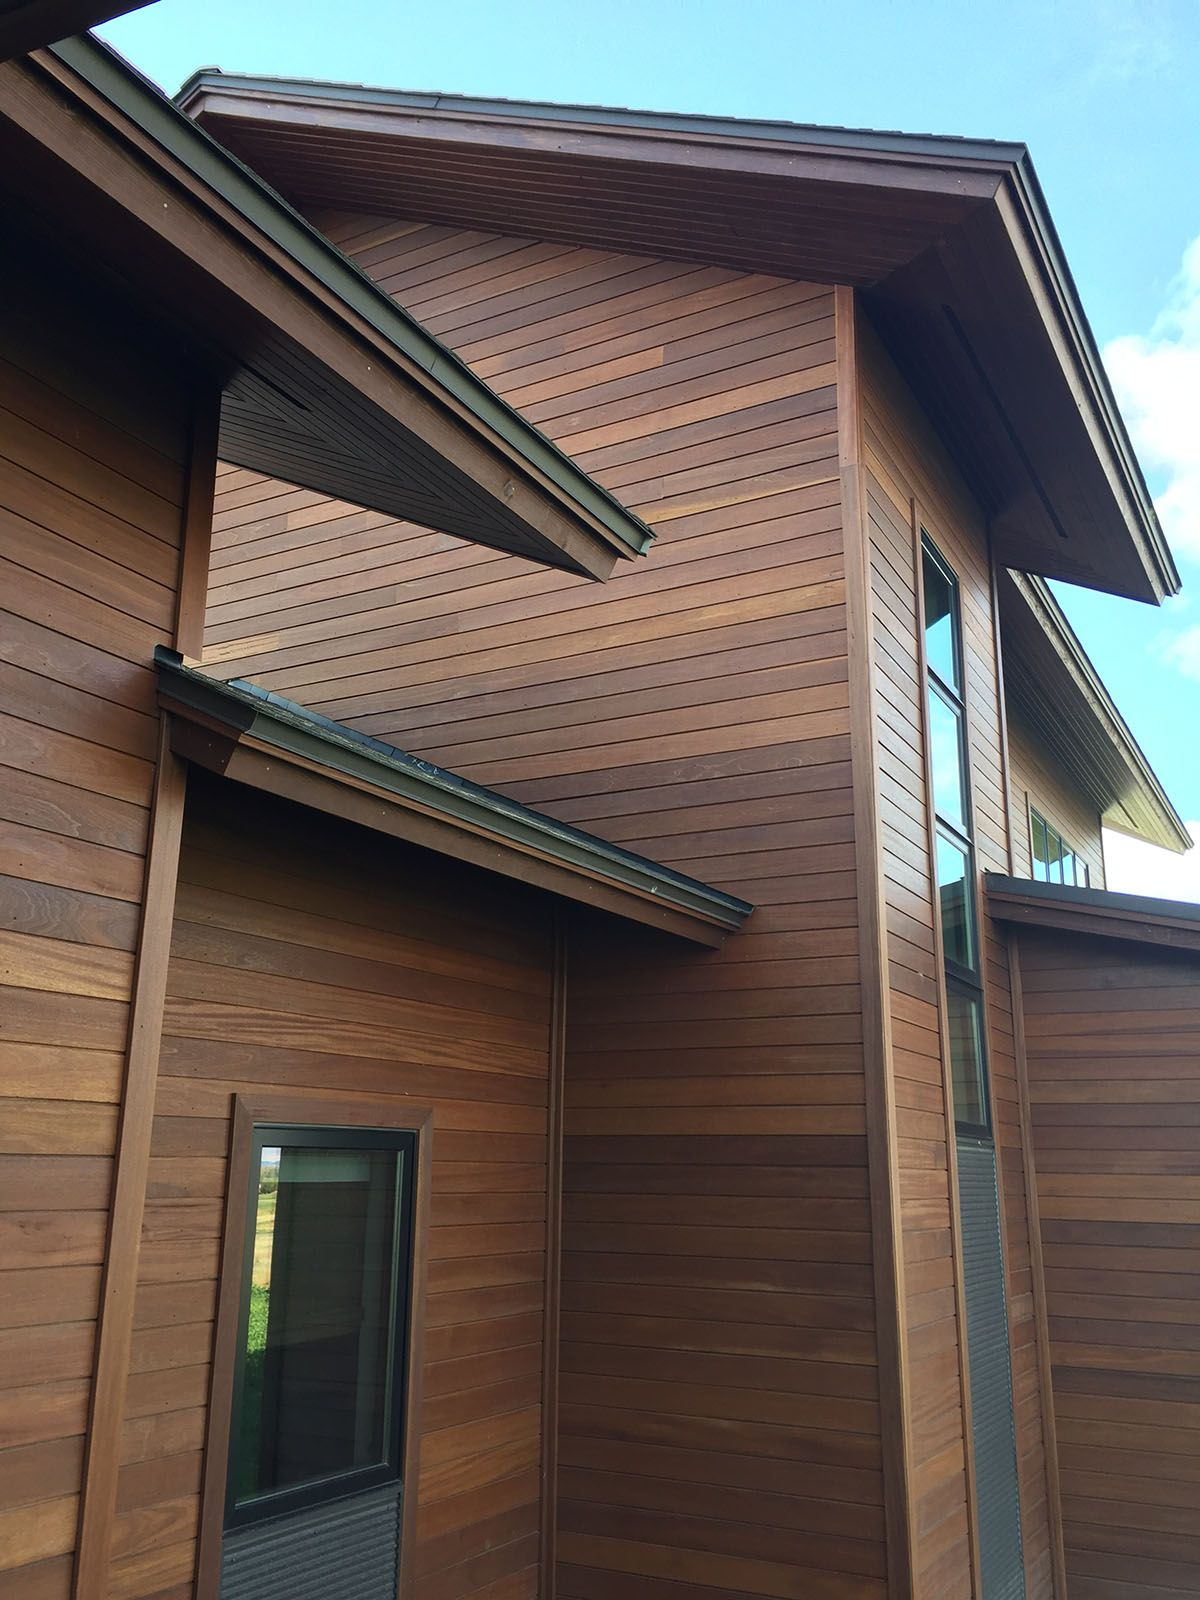 Batu Siding 1x6 Fineline Shiplap Bozeman Home Nova Usa Wood Wood Cladding Exterior Cladding Systems Hardwood Decking